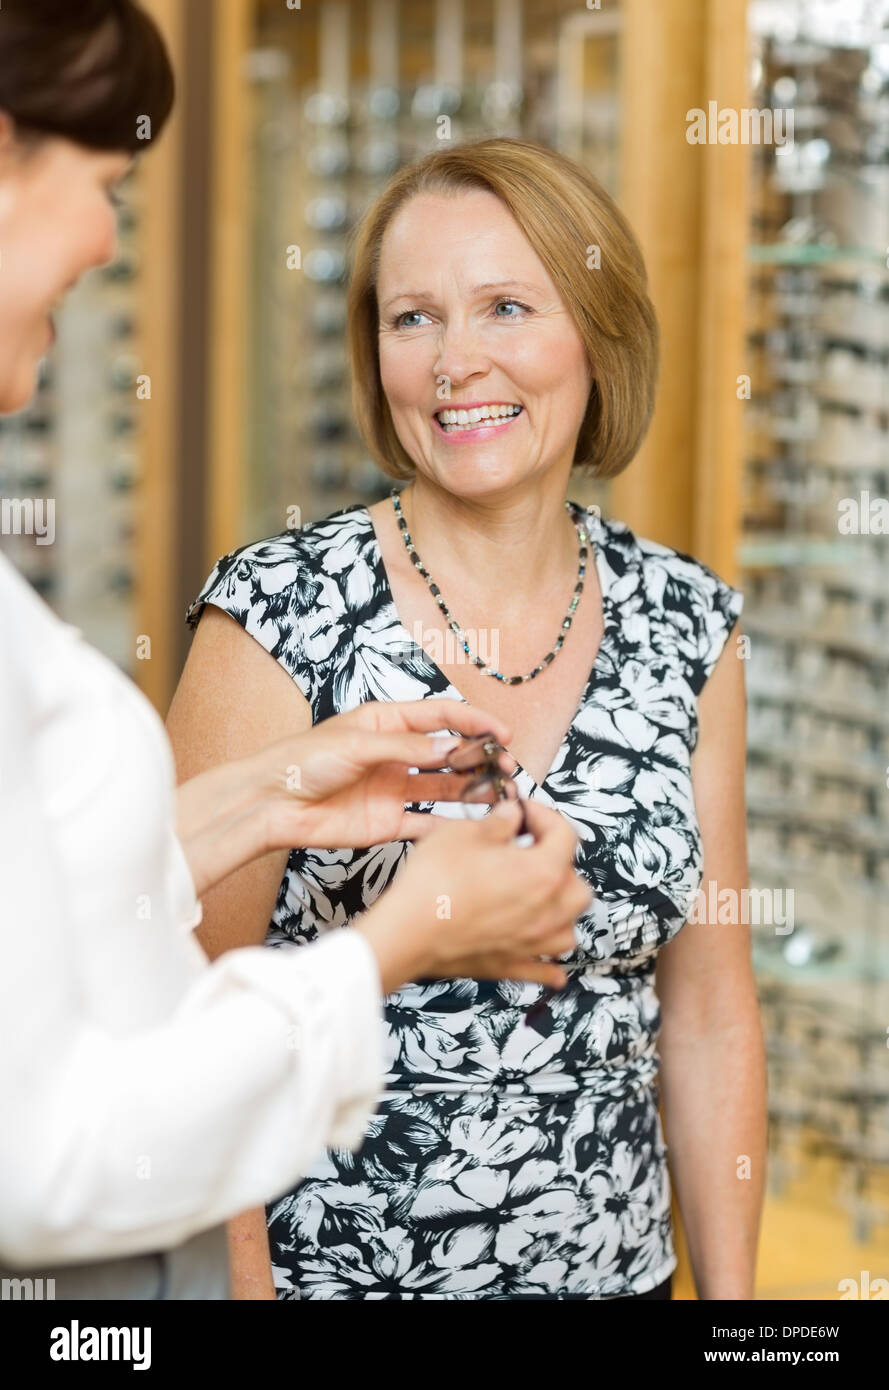 Salesgirl Assisting Senior Customer In Selecting Glasses - Stock Image